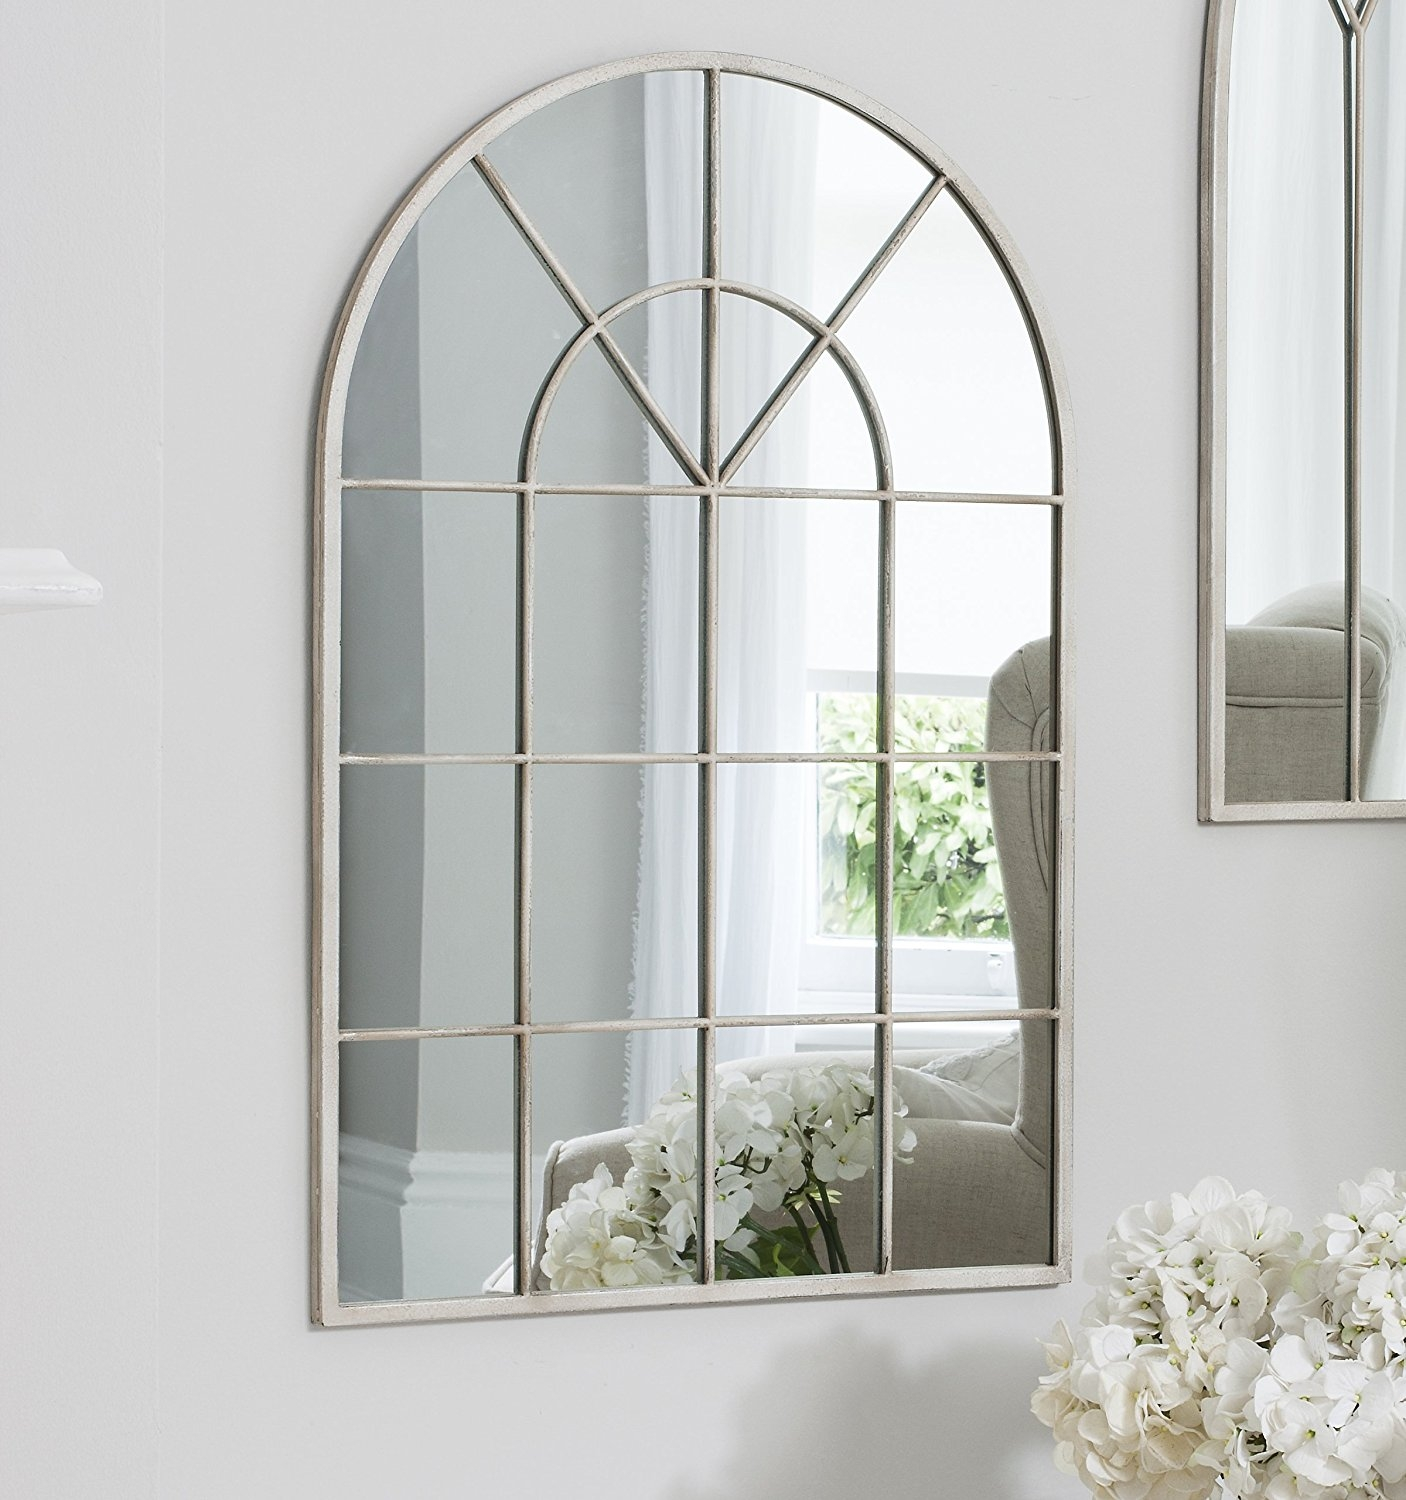 Rockford Large Vintage Metal Arched Window Overmantle Wall Mirror Throughout Large Arched Mirror (Image 13 of 15)